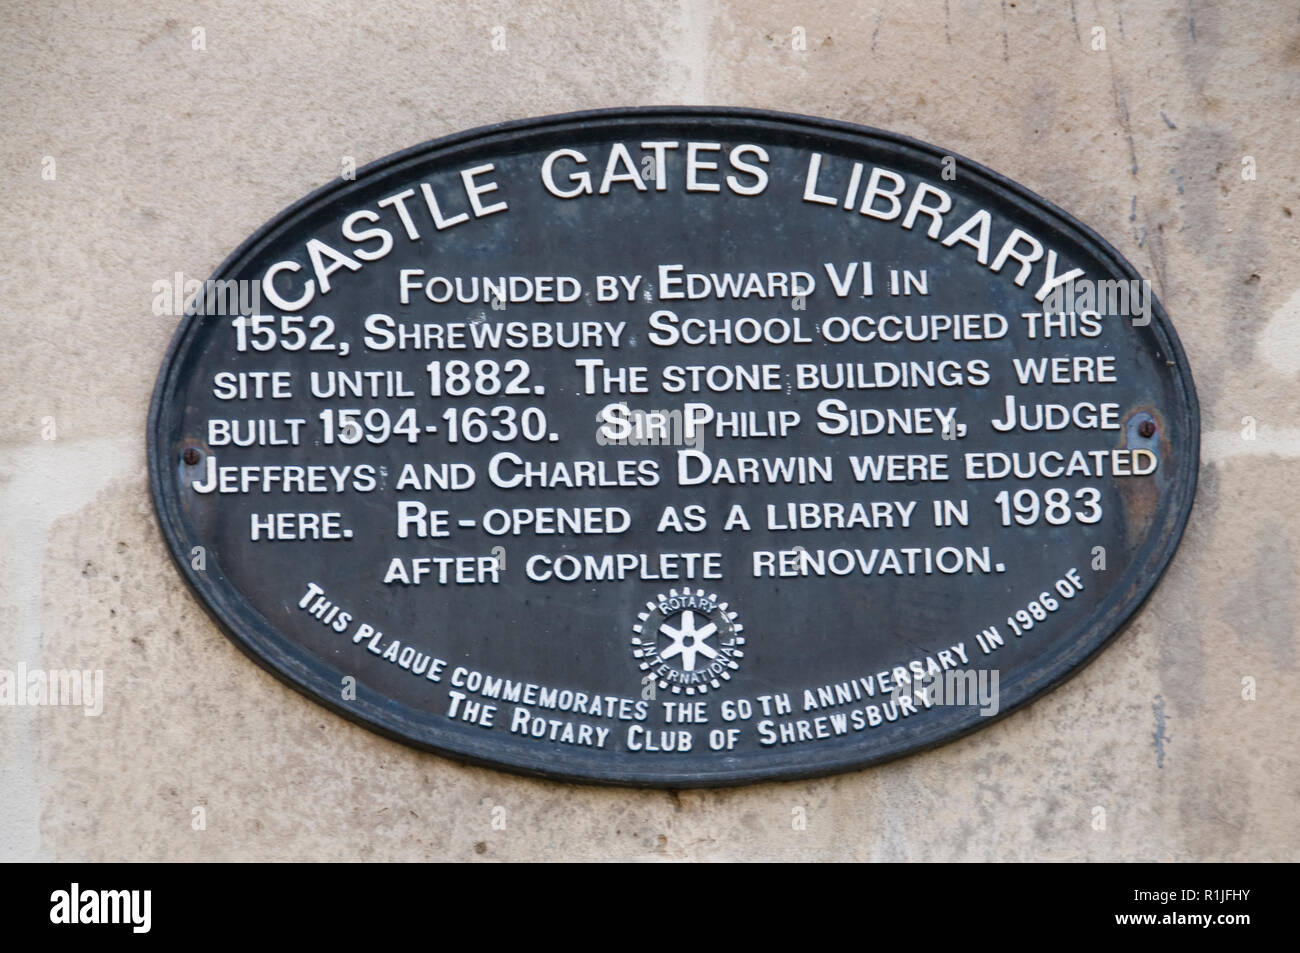 A plaque on the wall of the Castle Gates Library in Shrewsbury, Shropshire, Britain.   Sir Philip Sidney, Judge Jeffreys and Charles Darwin were educa - Stock Image